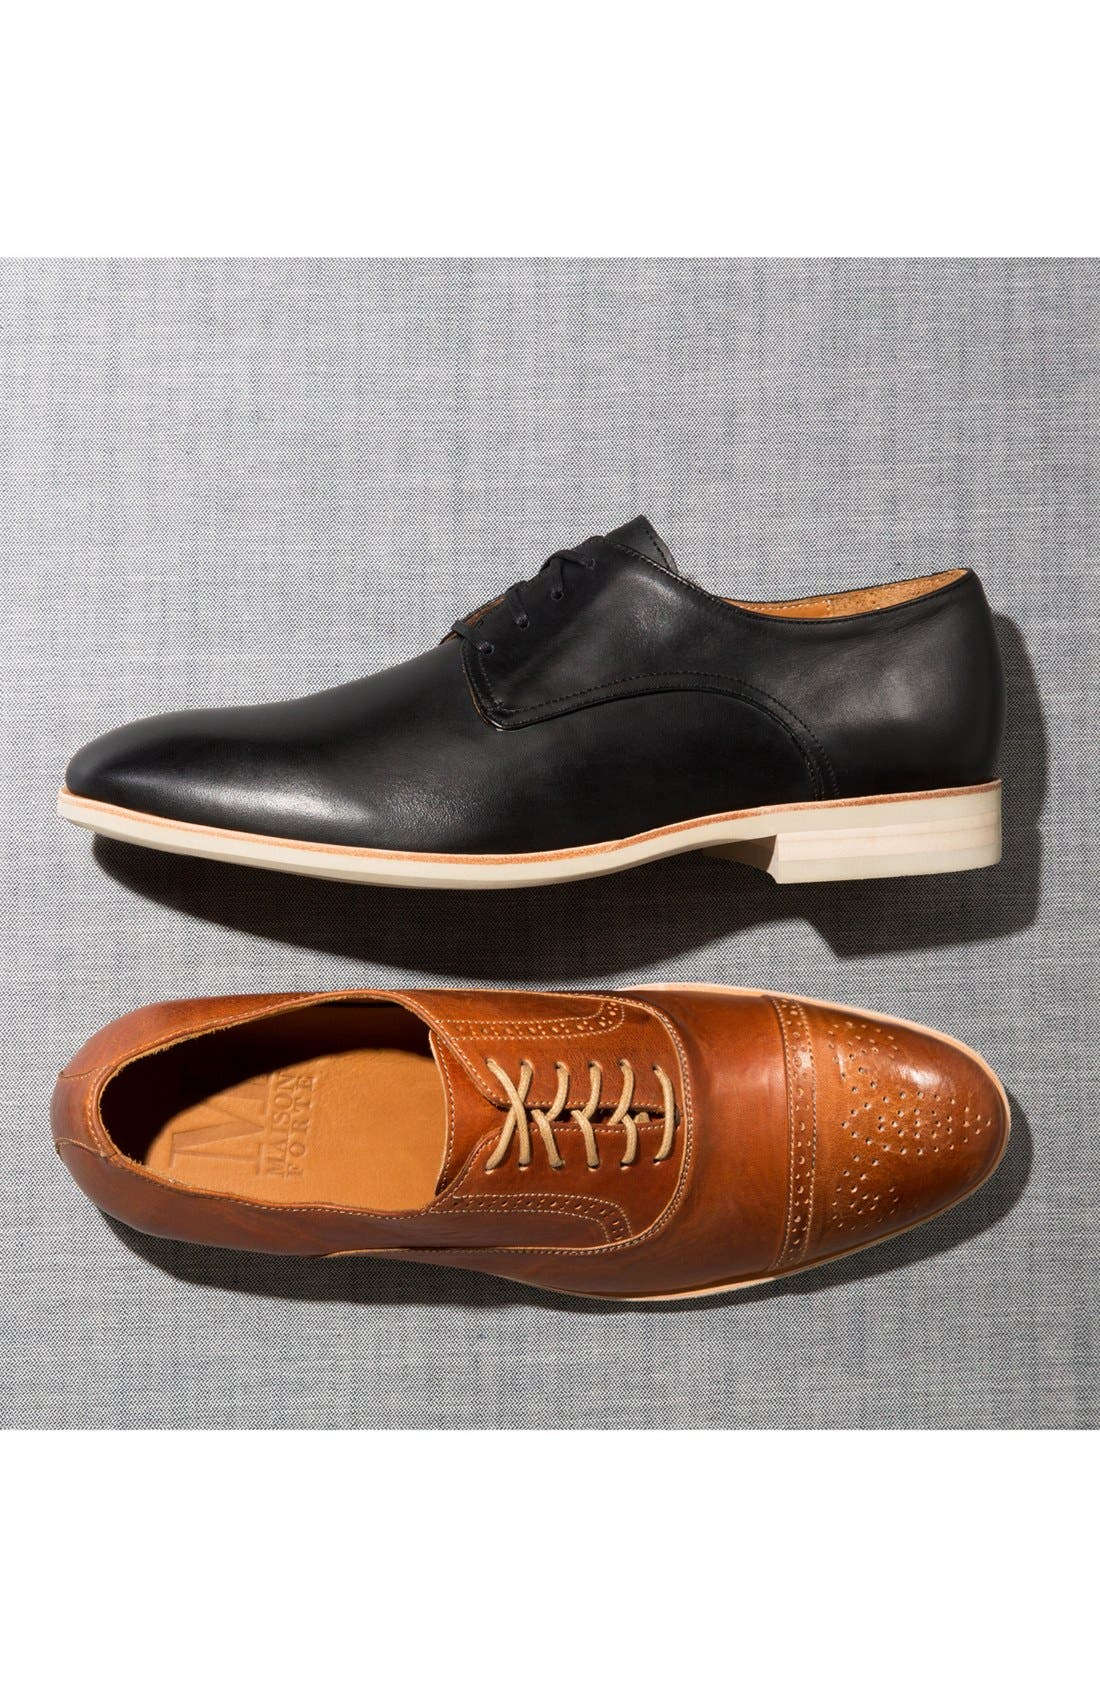 Alternate Image 5  - Maison Forte 'Hyeres' Cap Toe Oxford